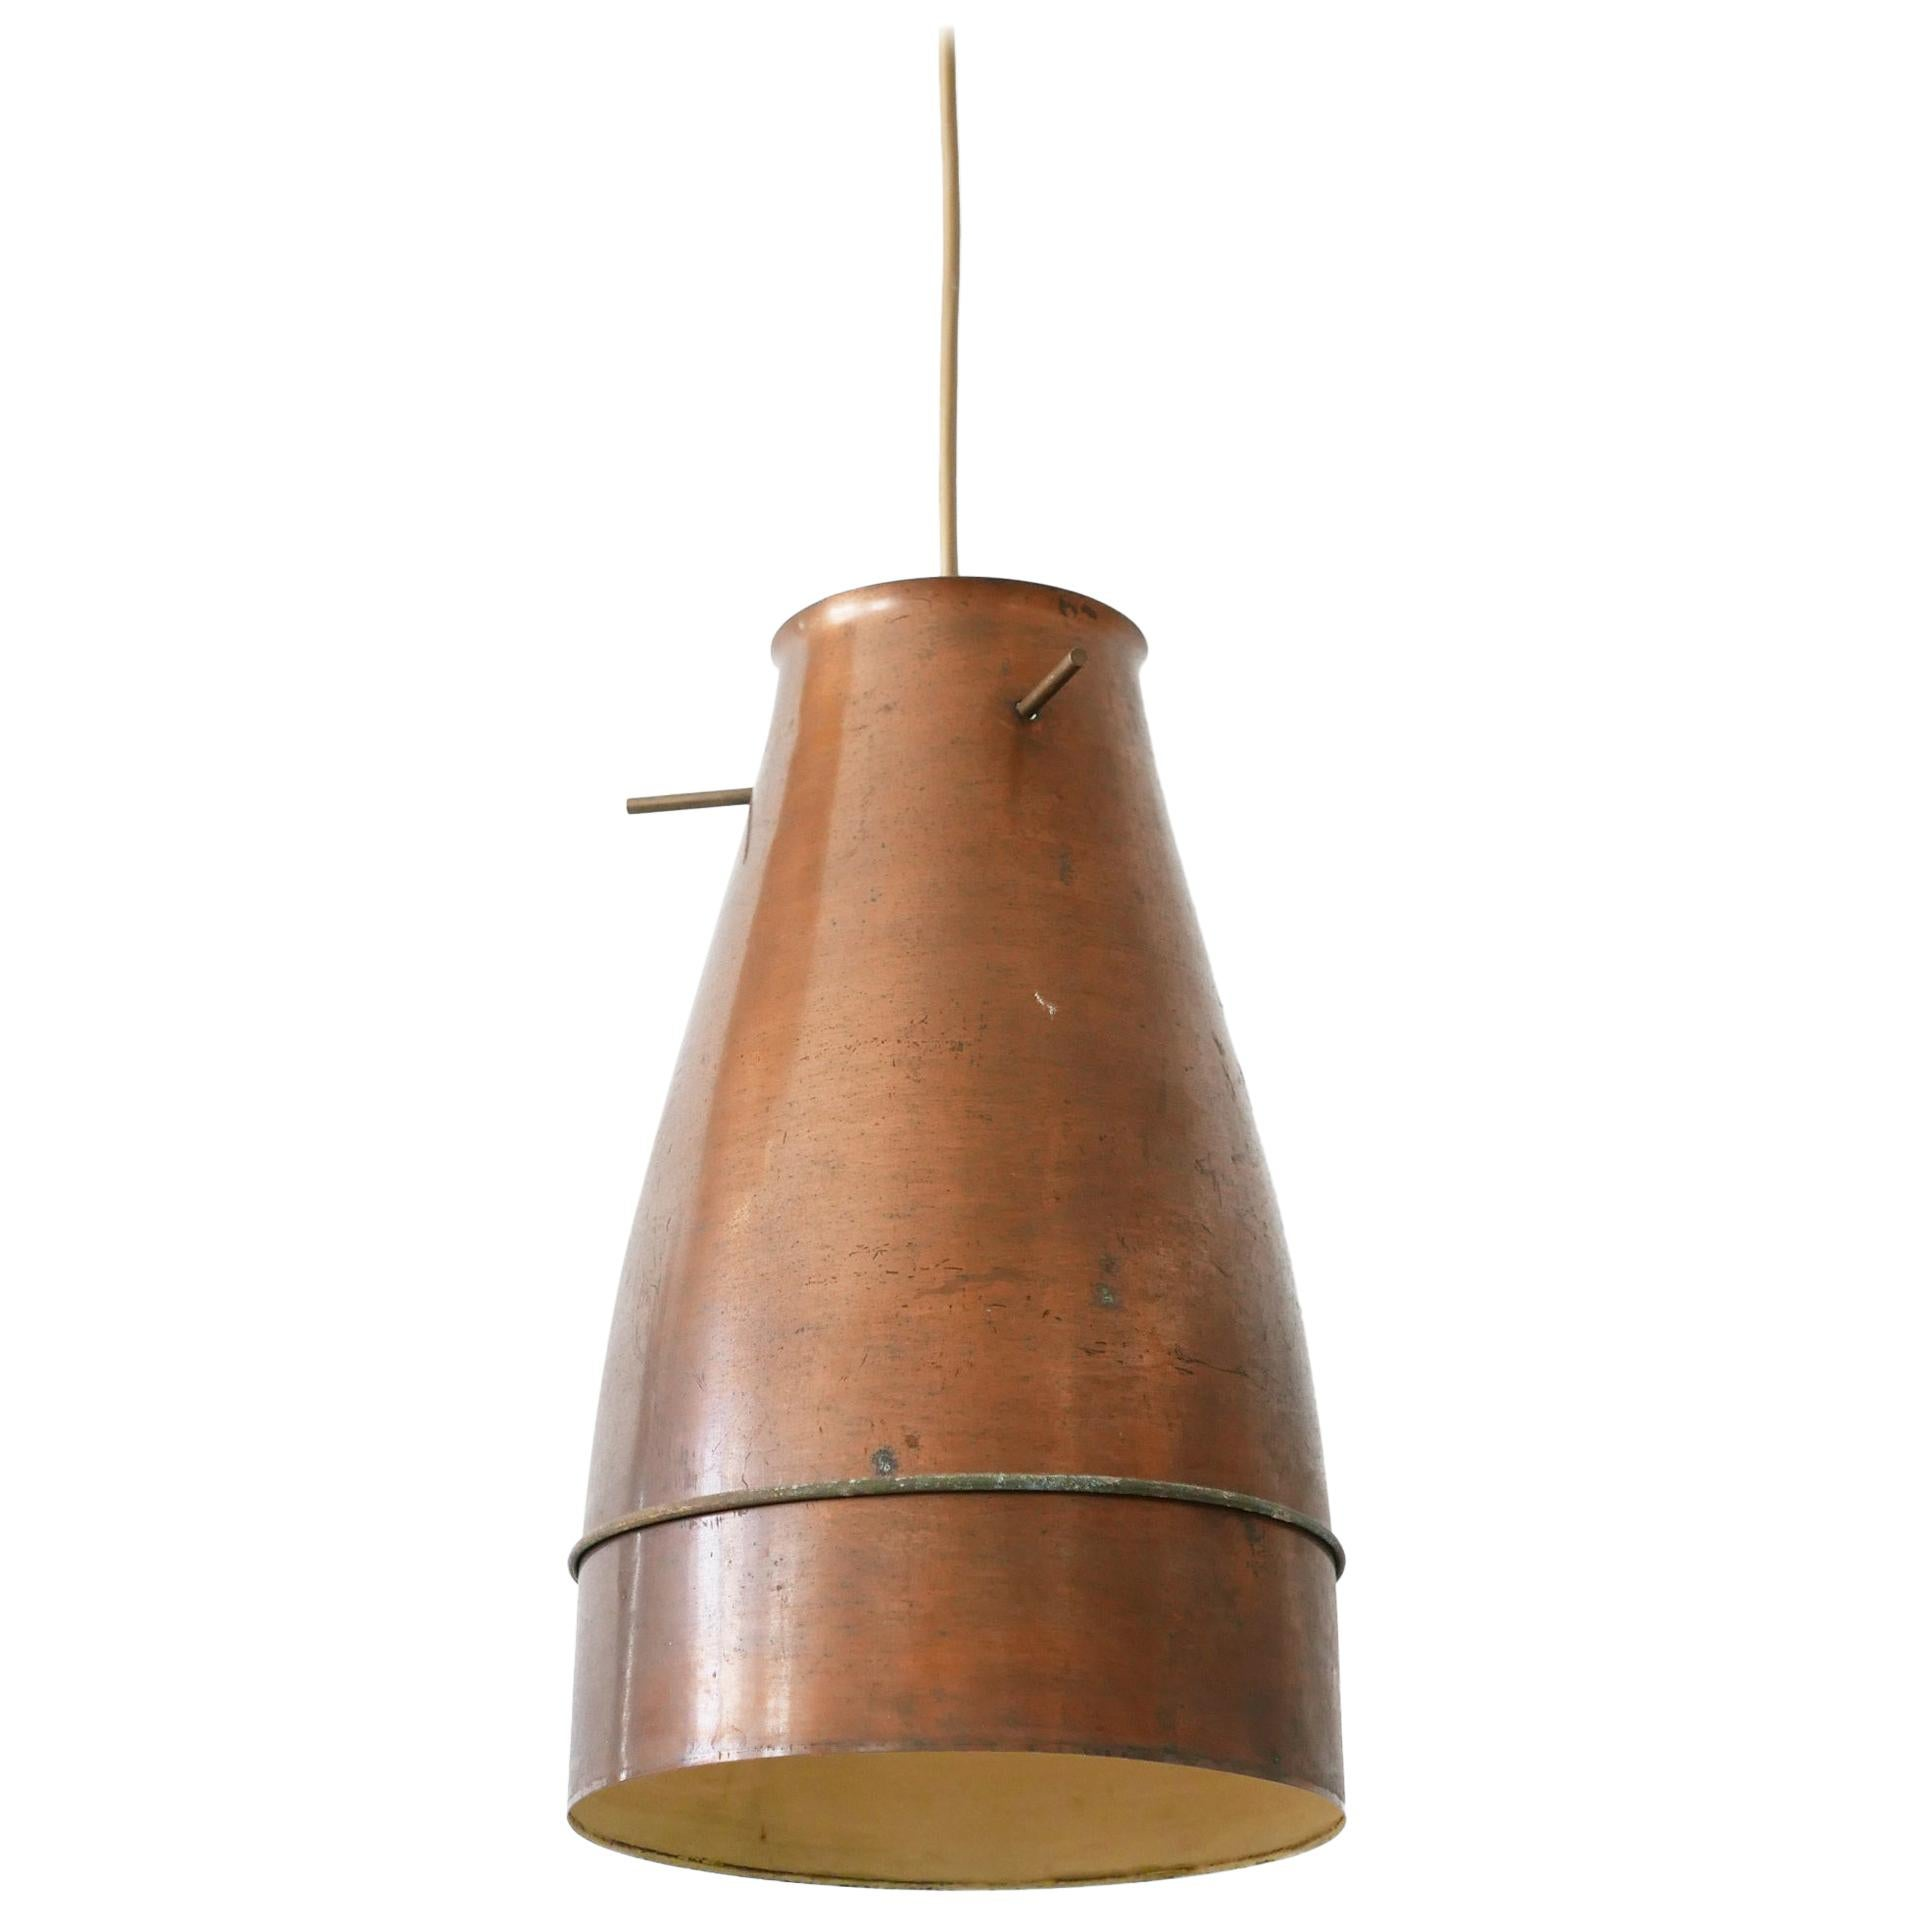 Rare and Elegant Mid-Century Modern Copper Pendant Lamp, 1950s, Germany